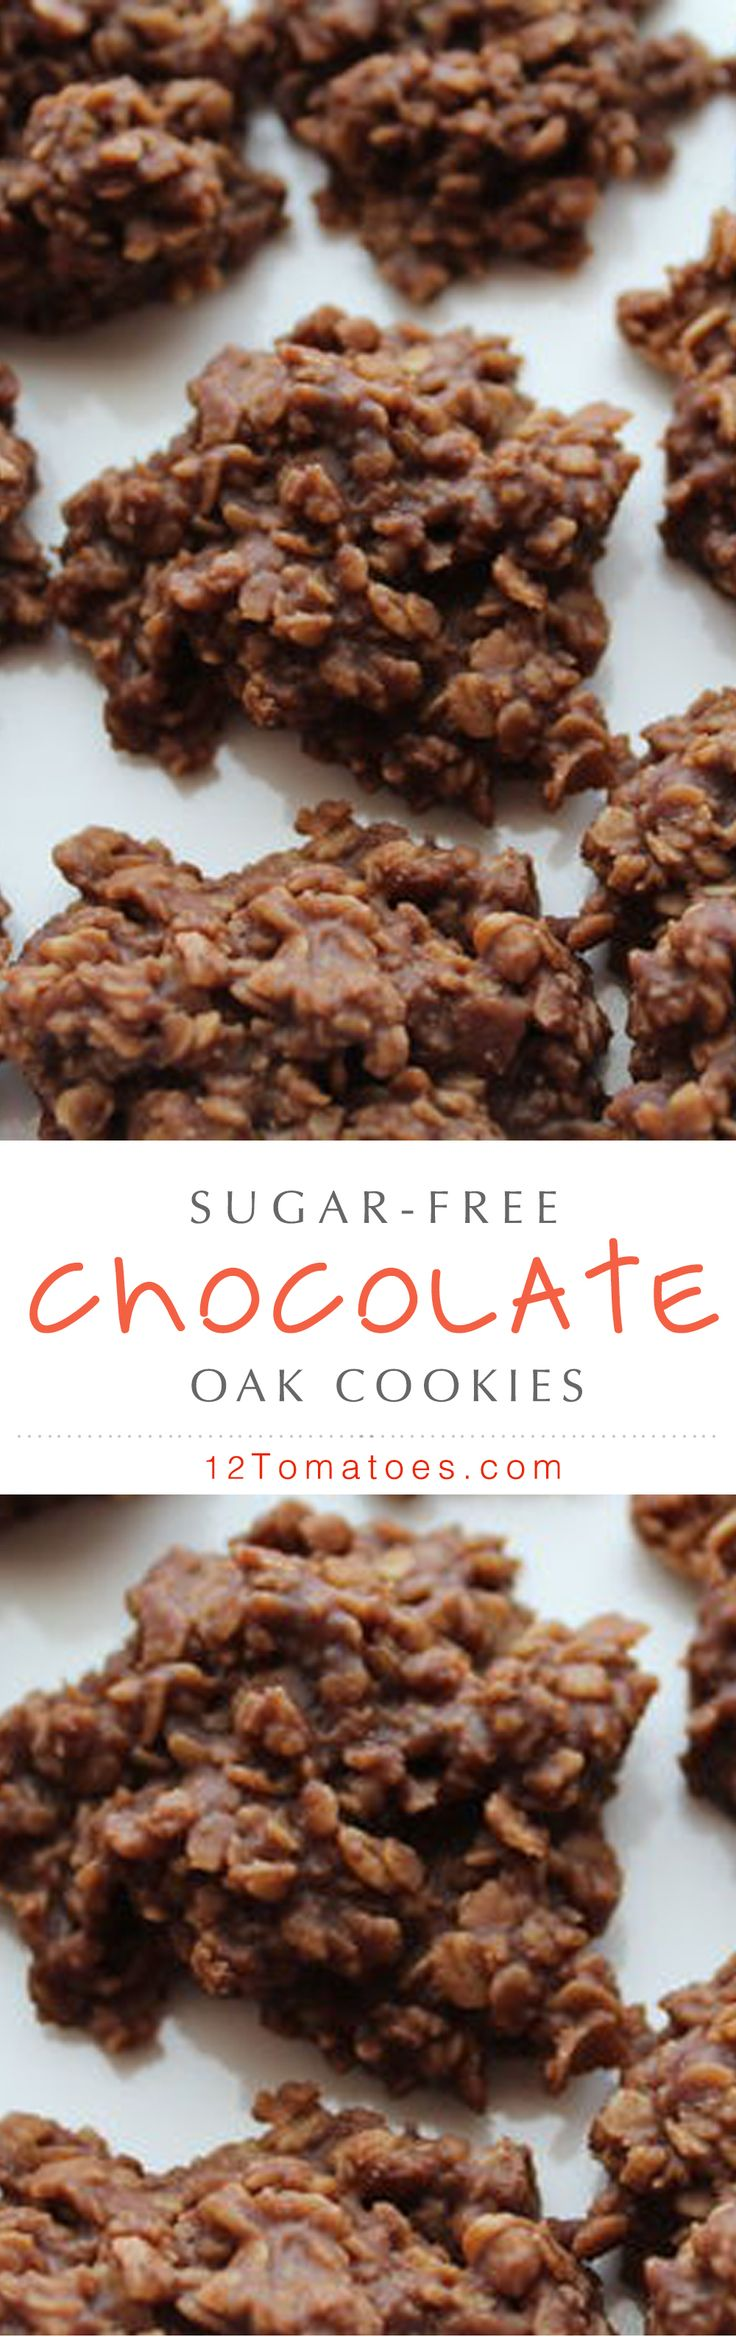 You need to try out this delicious sugar-free chocolate oak cookies for tonight's dessert!